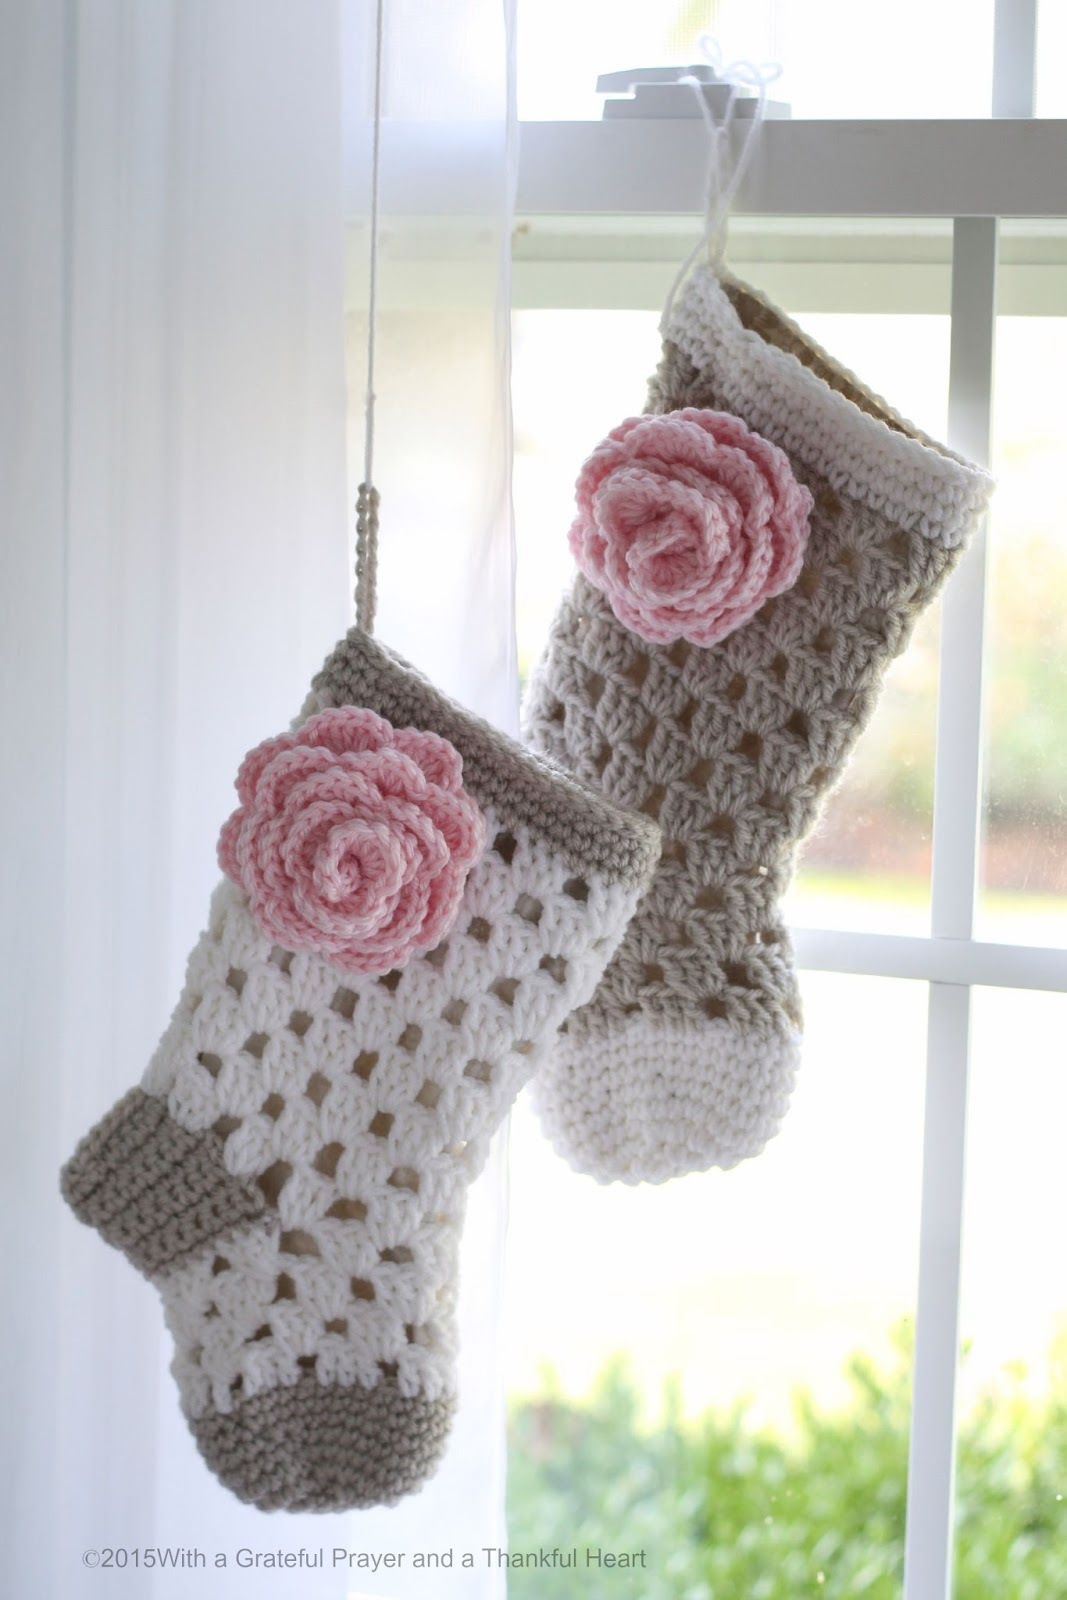 These Crochet Projects Ideas Will Blow Your Mind Christmas Crochet Ideas Gift Useful